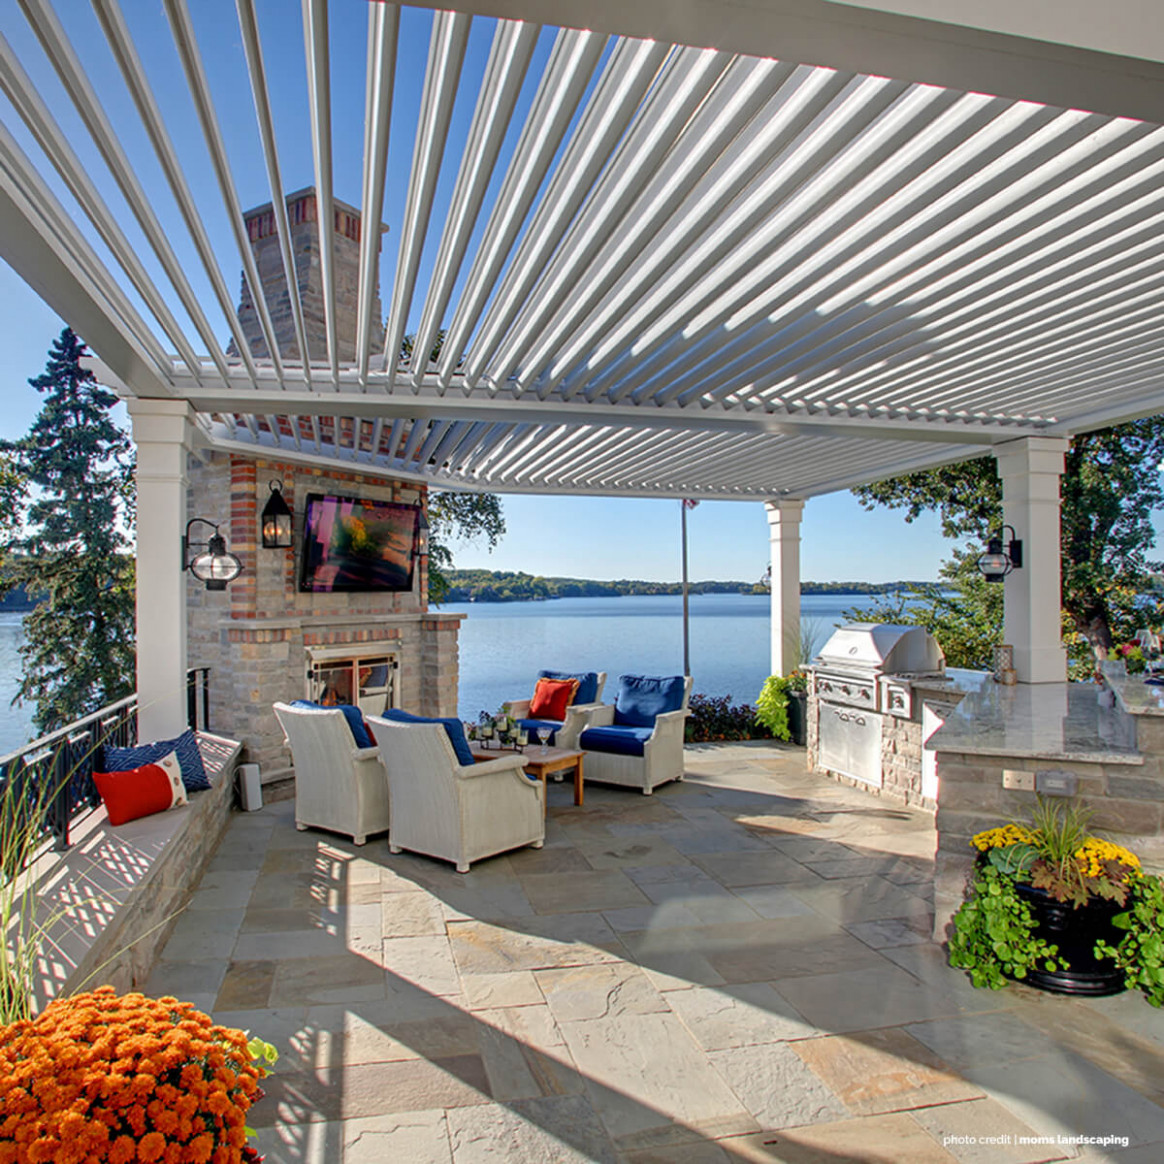 American Louvered Roof Systems | Kuert Roof & Carport Market George